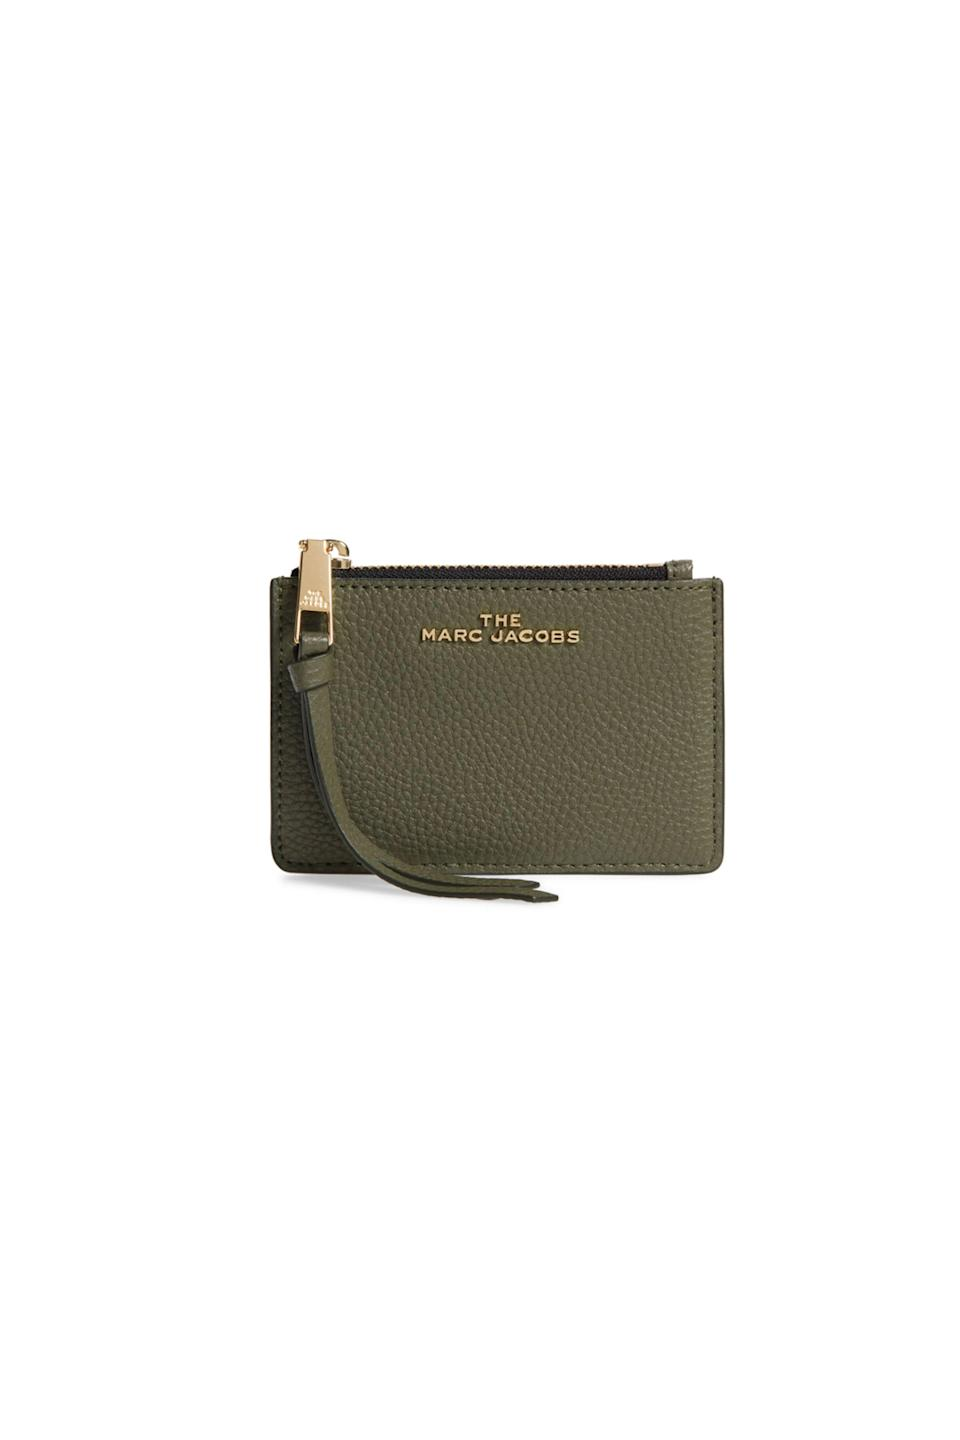 """<p><strong>THE MARC JACOBS</strong></p><p>nordstrom.com</p><p><strong>$74.90</strong></p><p><a href=""""https://go.redirectingat.com?id=74968X1596630&url=https%3A%2F%2Fwww.nordstrom.com%2Fs%2Fthe-marc-jacobs-leather-multi-wallet%2F5611678&sref=https%3A%2F%2Fwww.goodhousekeeping.com%2Flife%2Fmoney%2Fg33419415%2Fbest-nordstrom-anniversary-sales-2020%2F"""" rel=""""nofollow noopener"""" target=""""_blank"""" data-ylk=""""slk:Shop Now"""" class=""""link rapid-noclick-resp"""">Shop Now</a></p><p><em>originally $120</em></p><p>This compact leather wallet is perfect for days when you just can't deal with the extra bulk. <br></p>"""